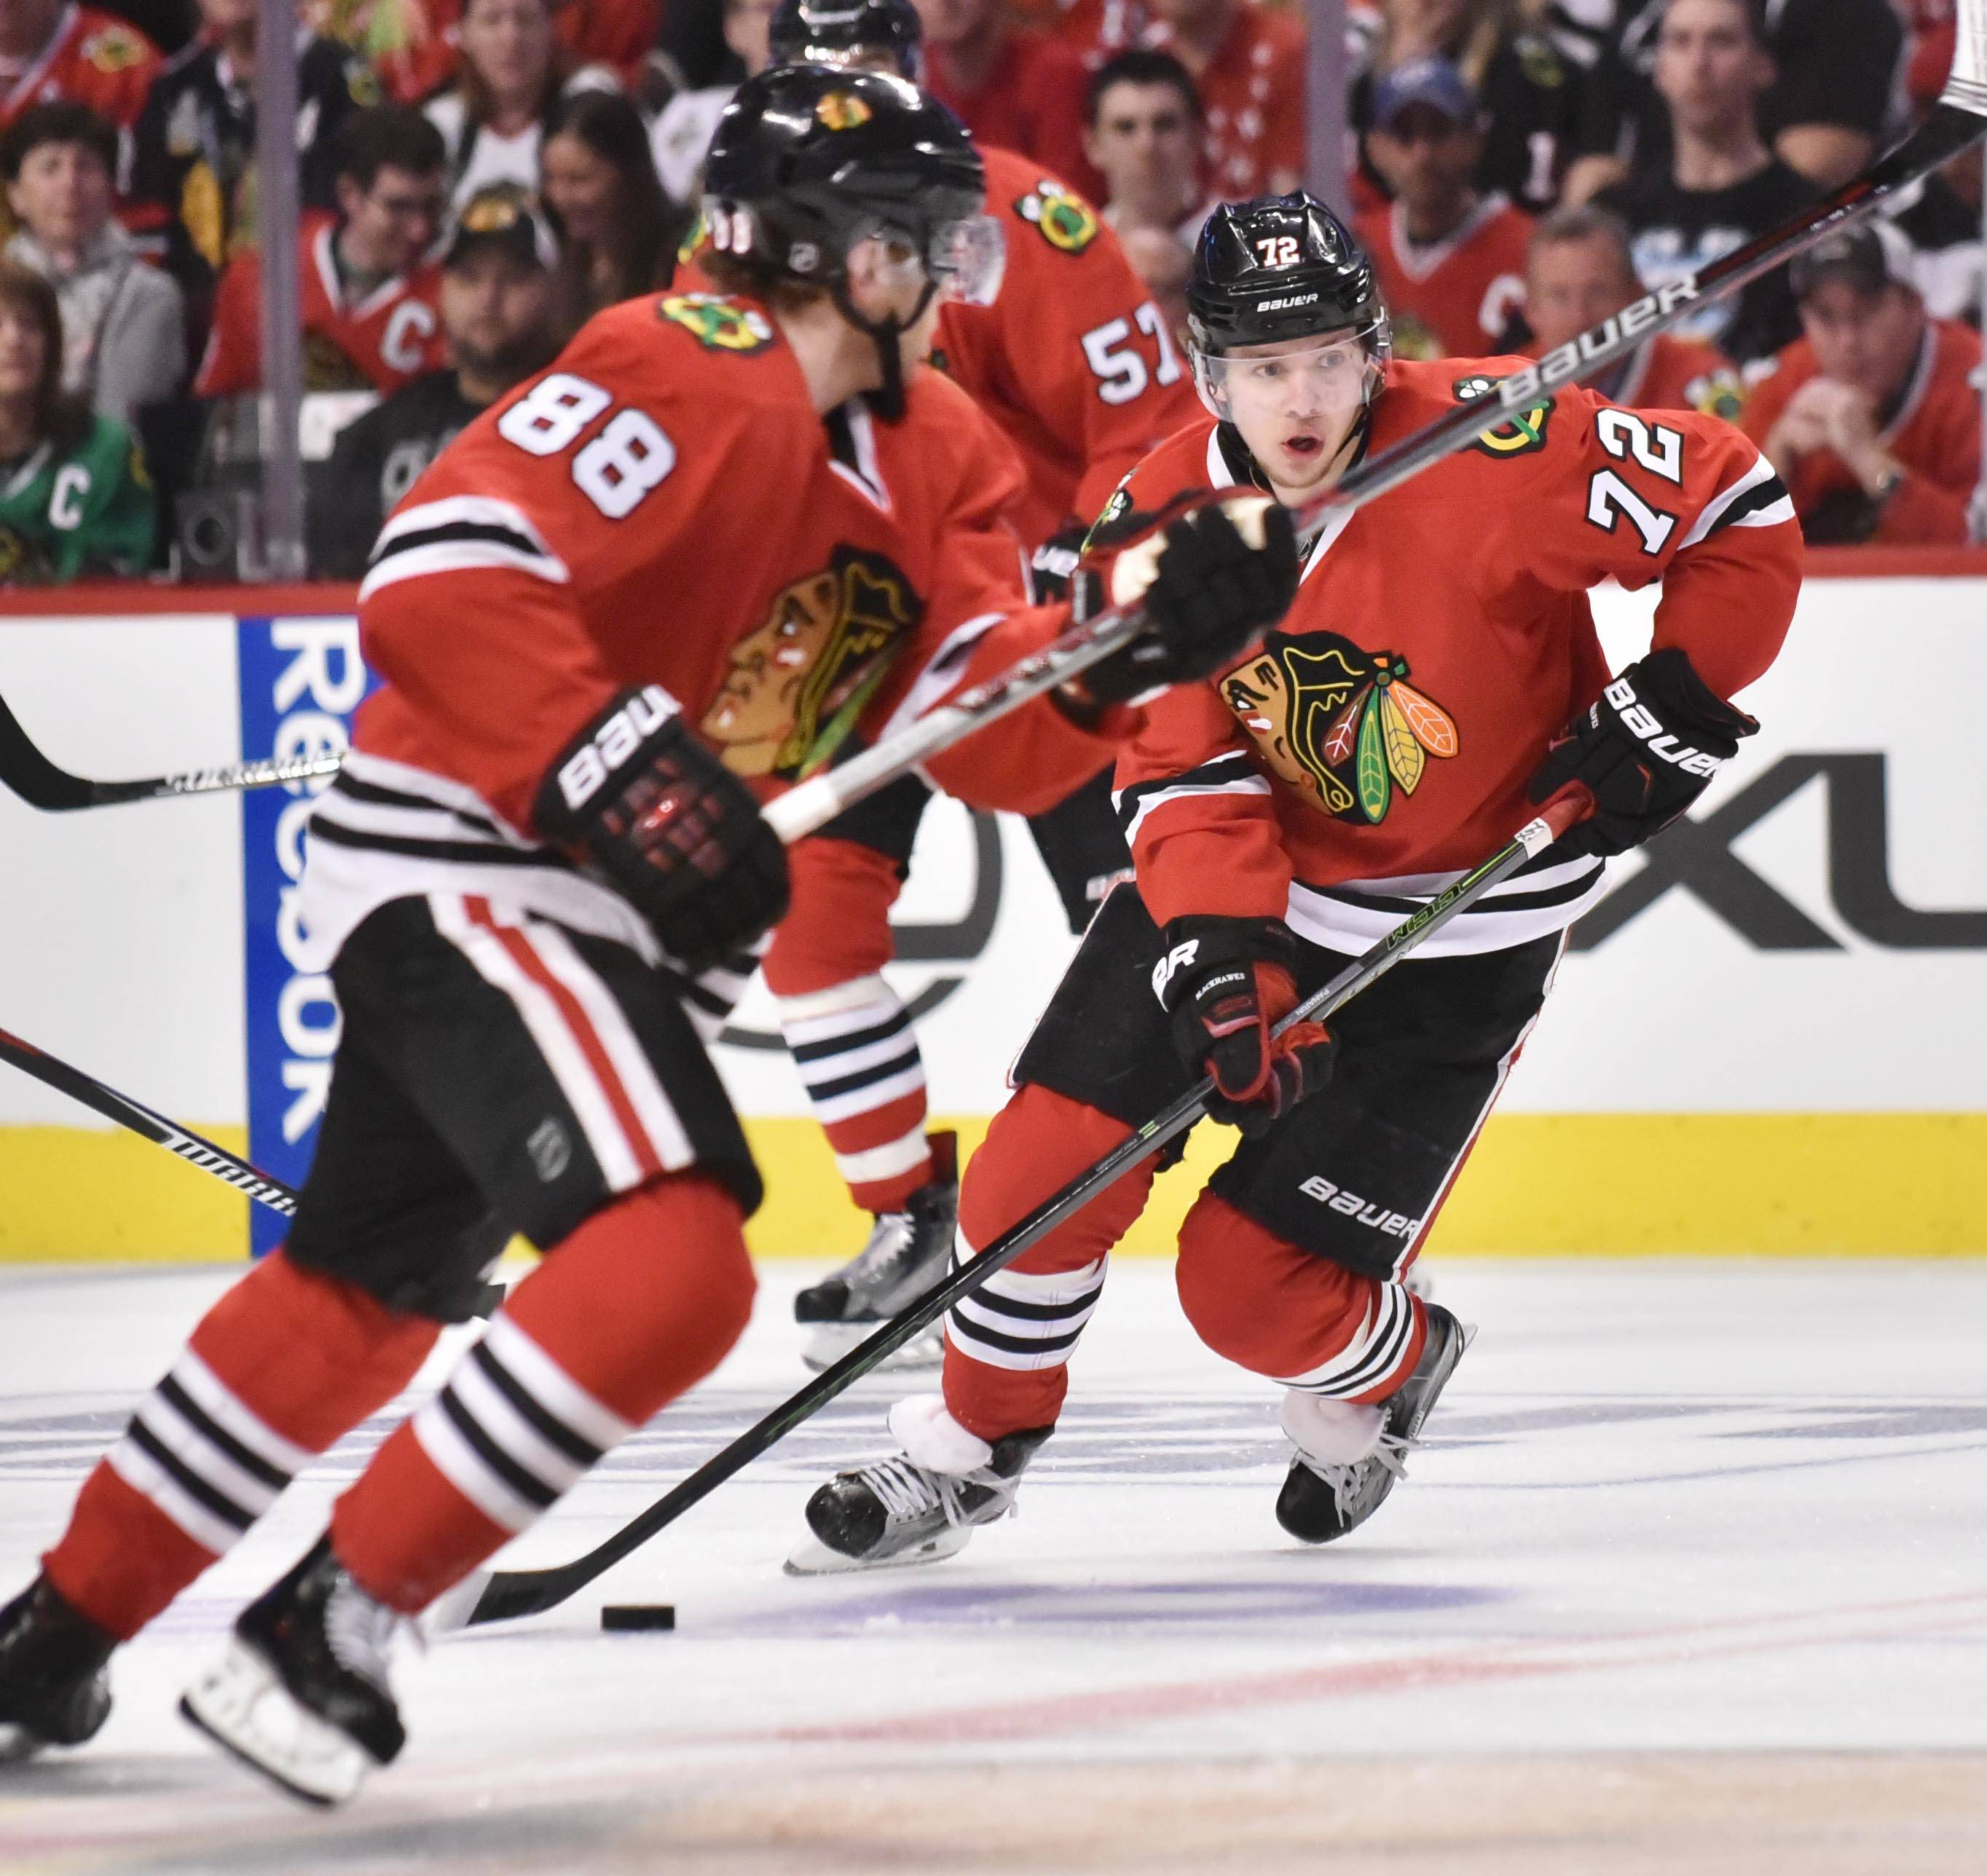 Chicago Blackhawks left wing Artemi Panarin and right wing Patrick Kane skate up ice against the St. Louis Blues.